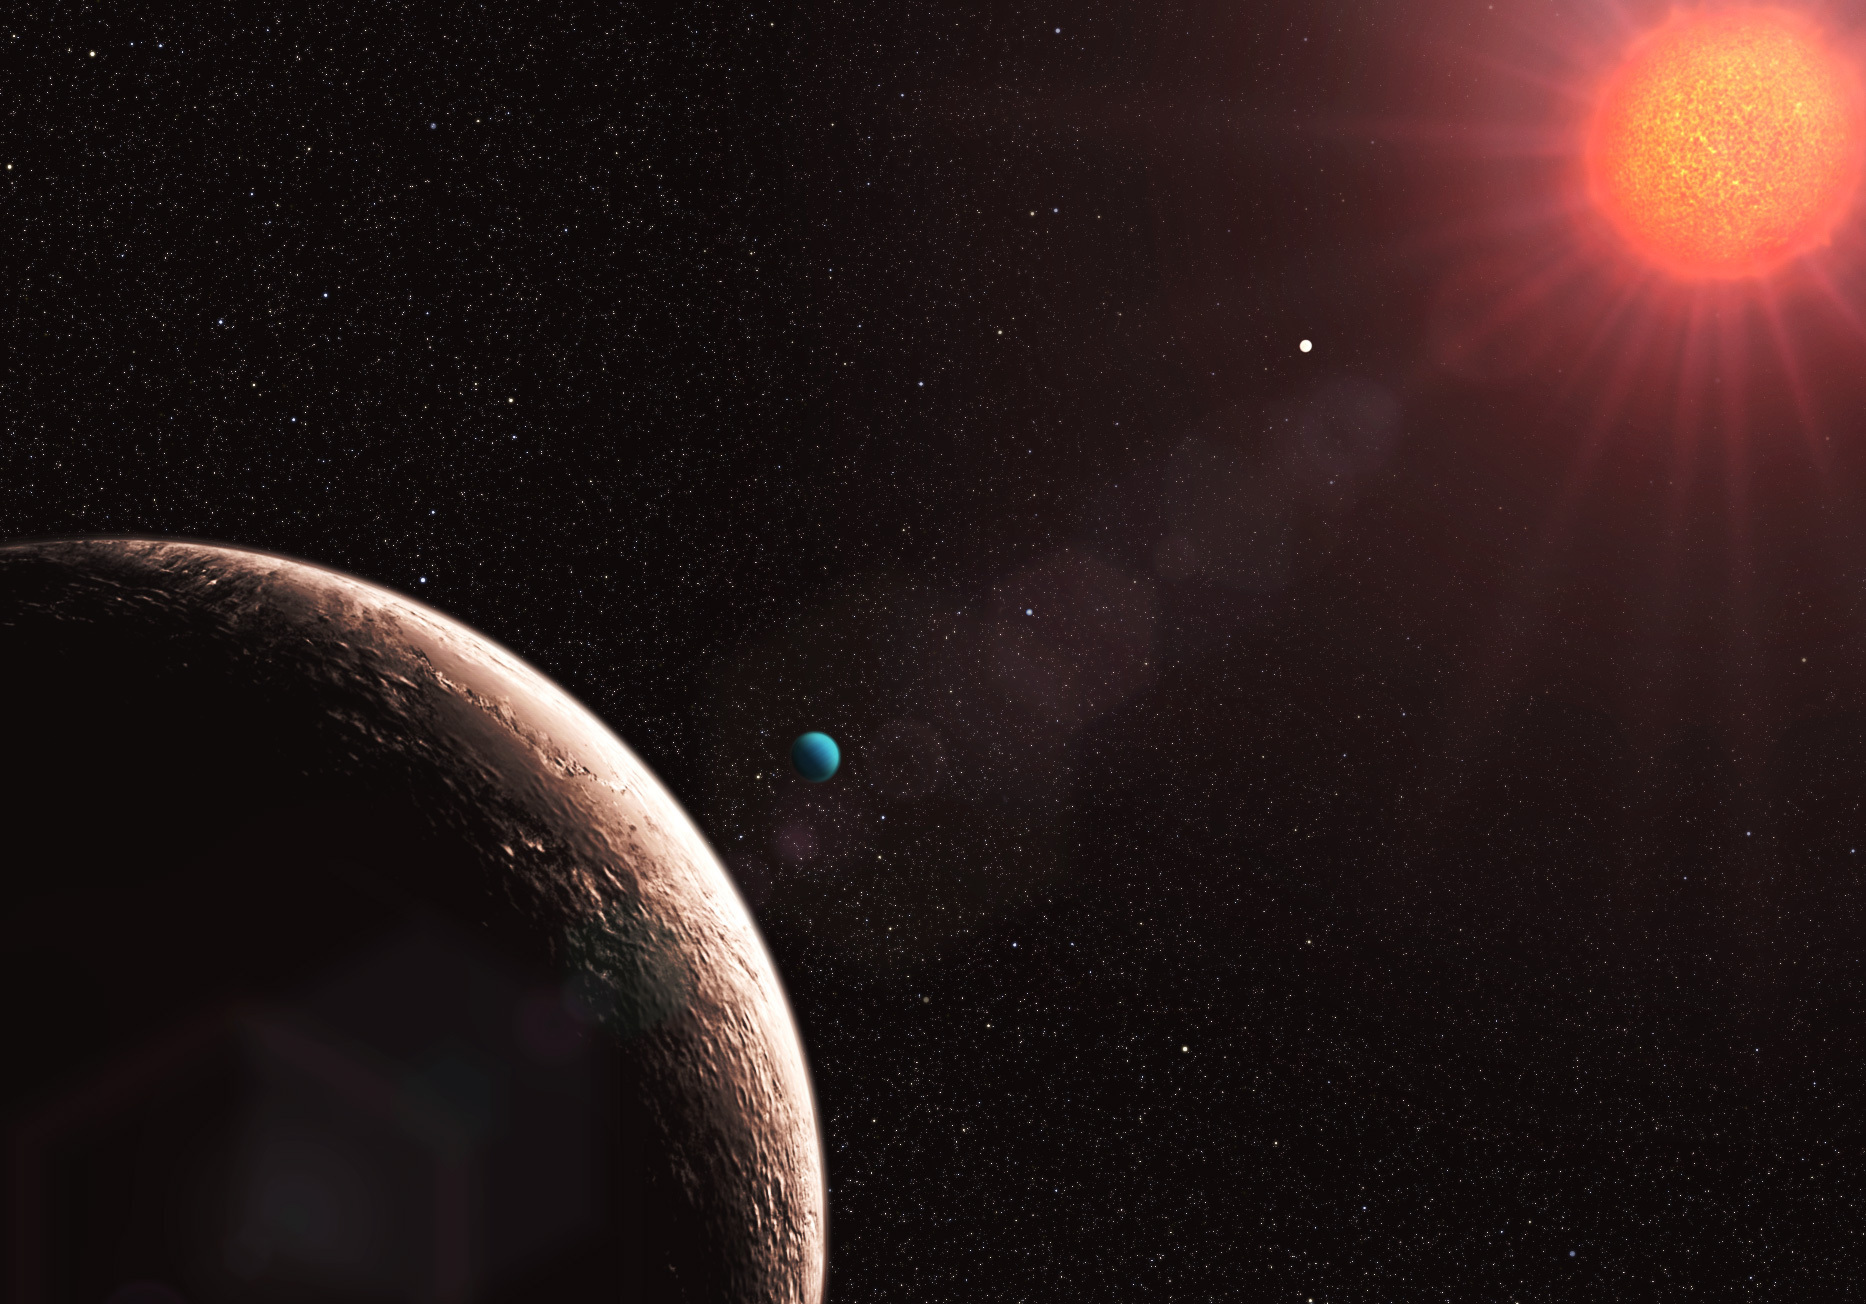 Habitable Planets May Not Look Exactly Like The Earth